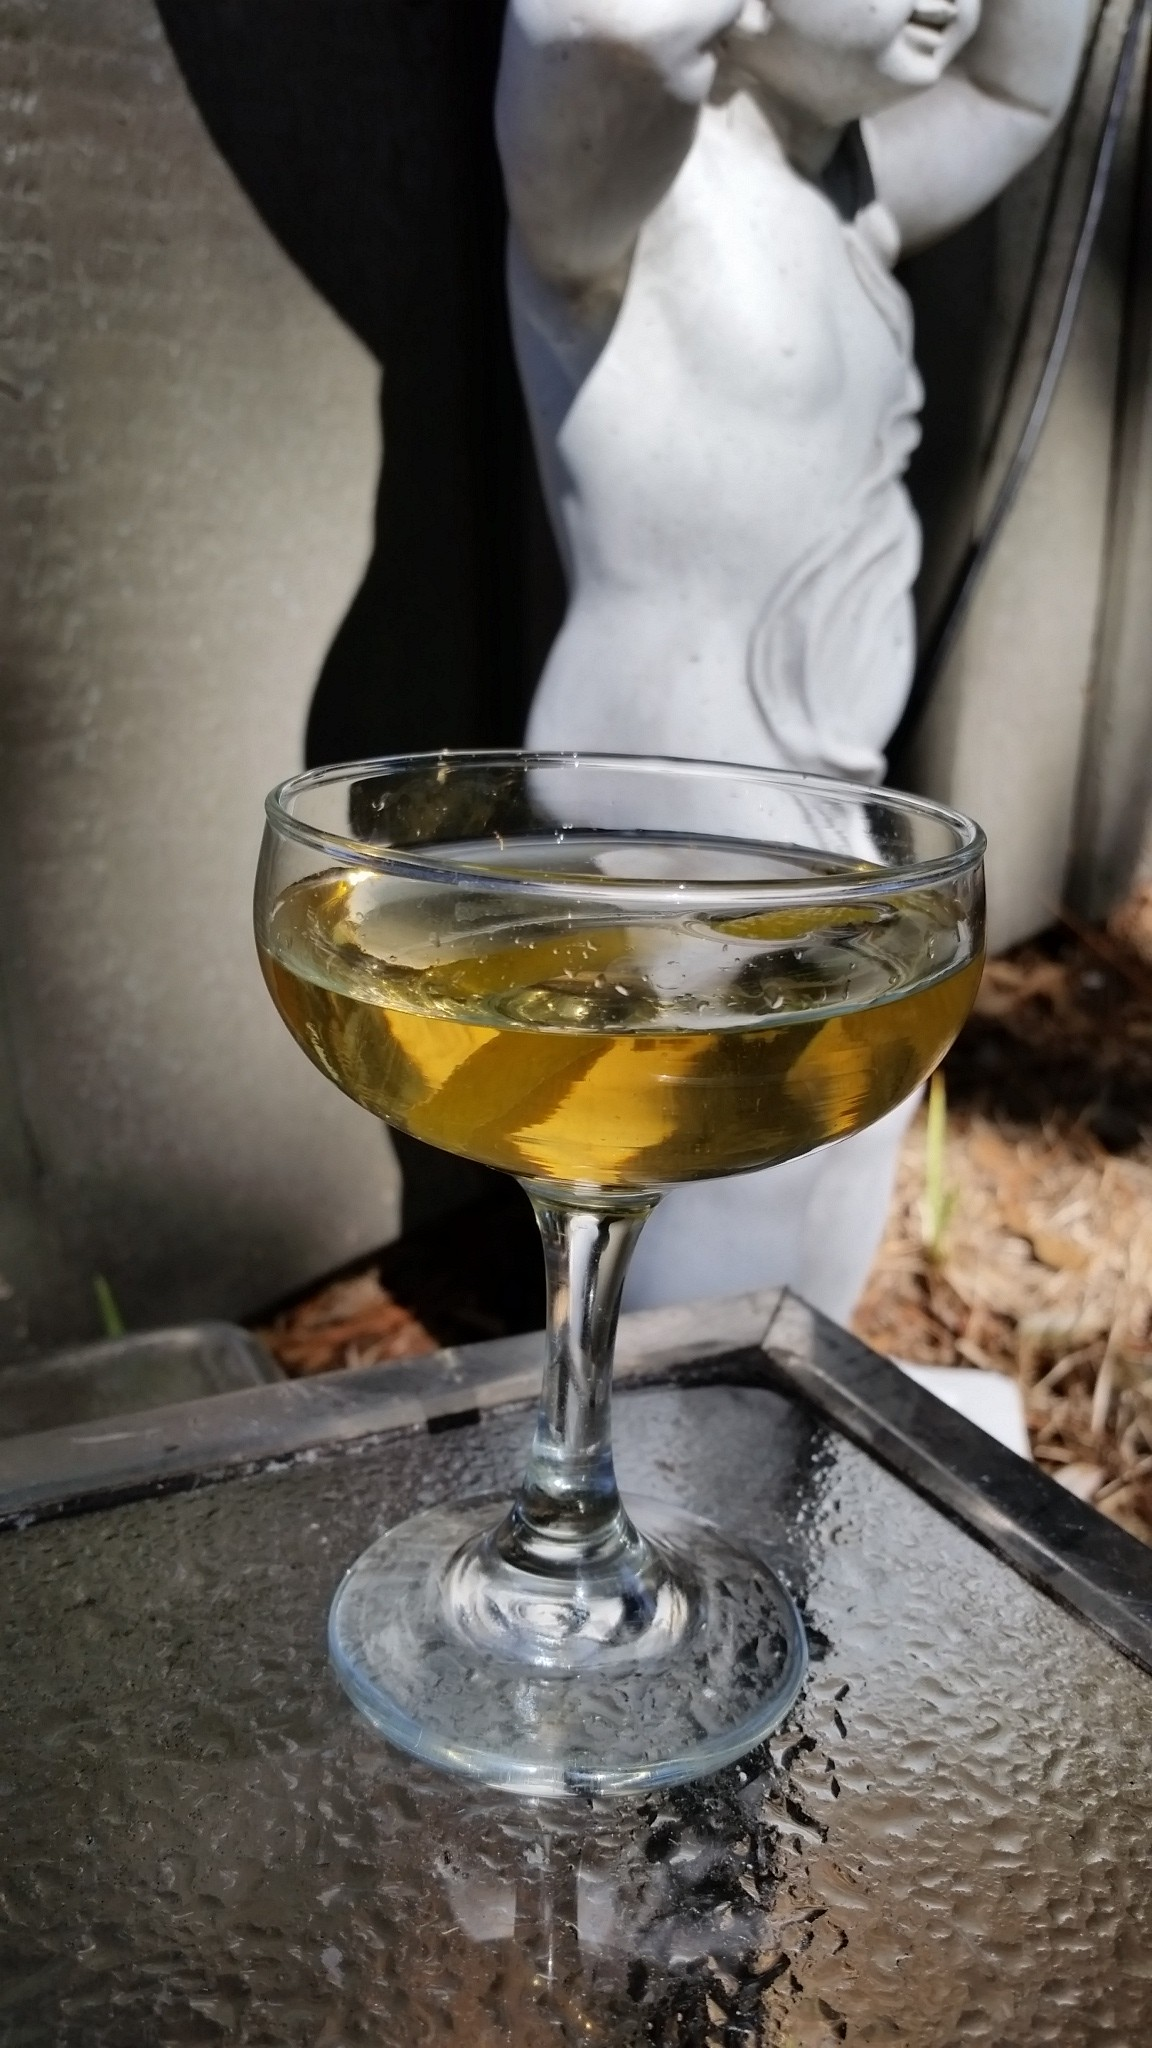 The .22 Caliber Cocktail: Scotch, Vodka, Nocello Walnut Liqueur